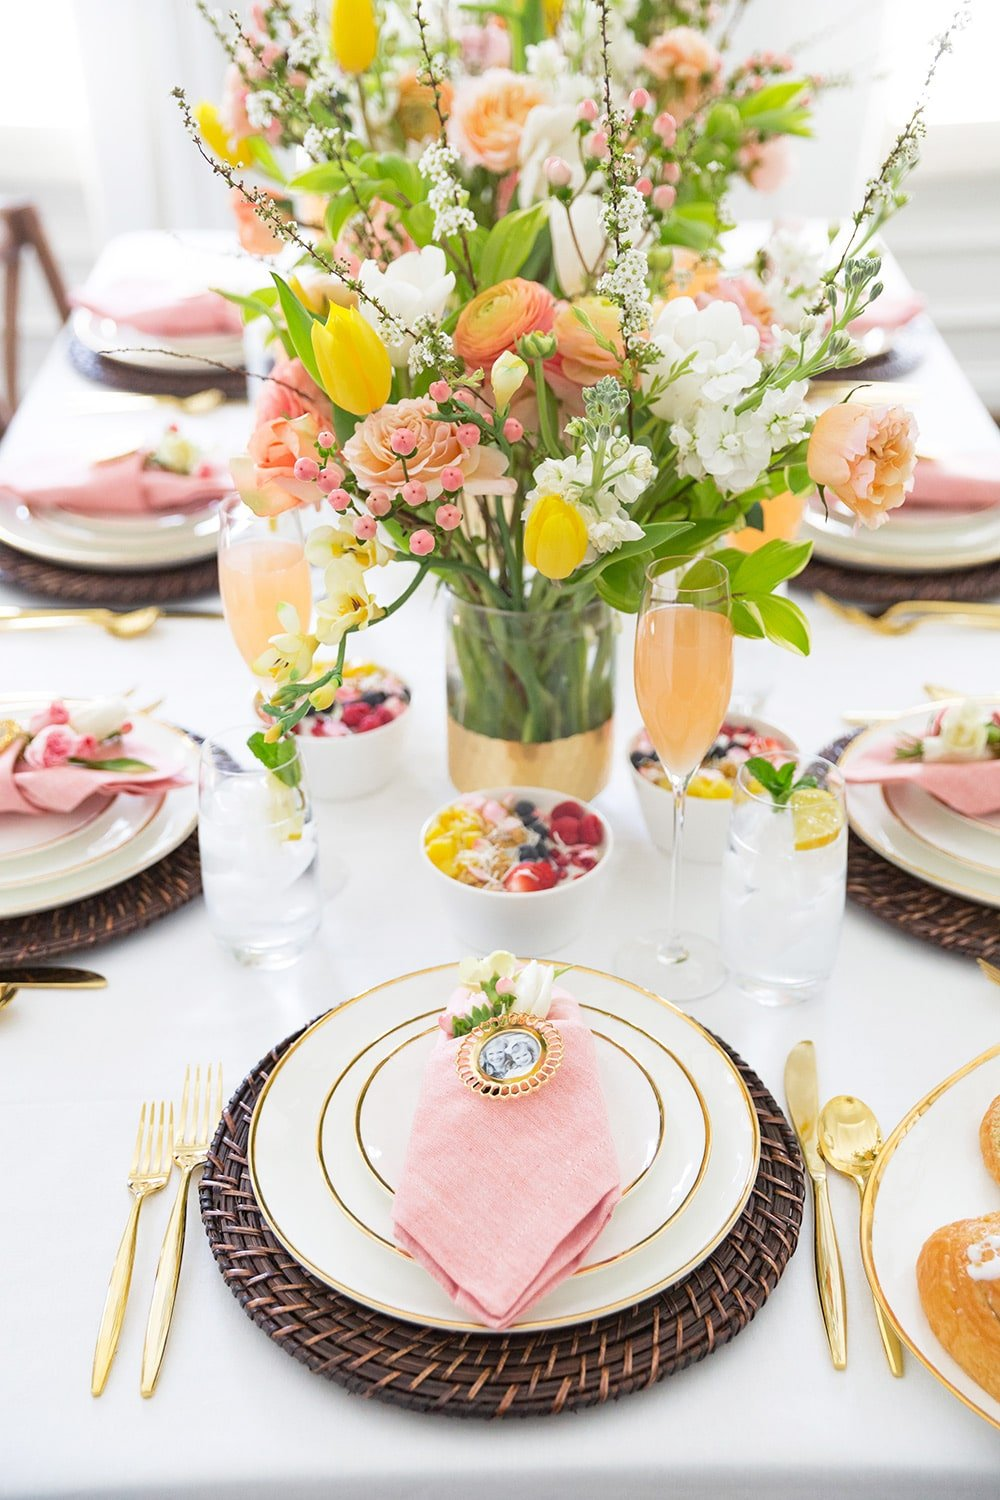 How to set the table for a Mother's day Brunch